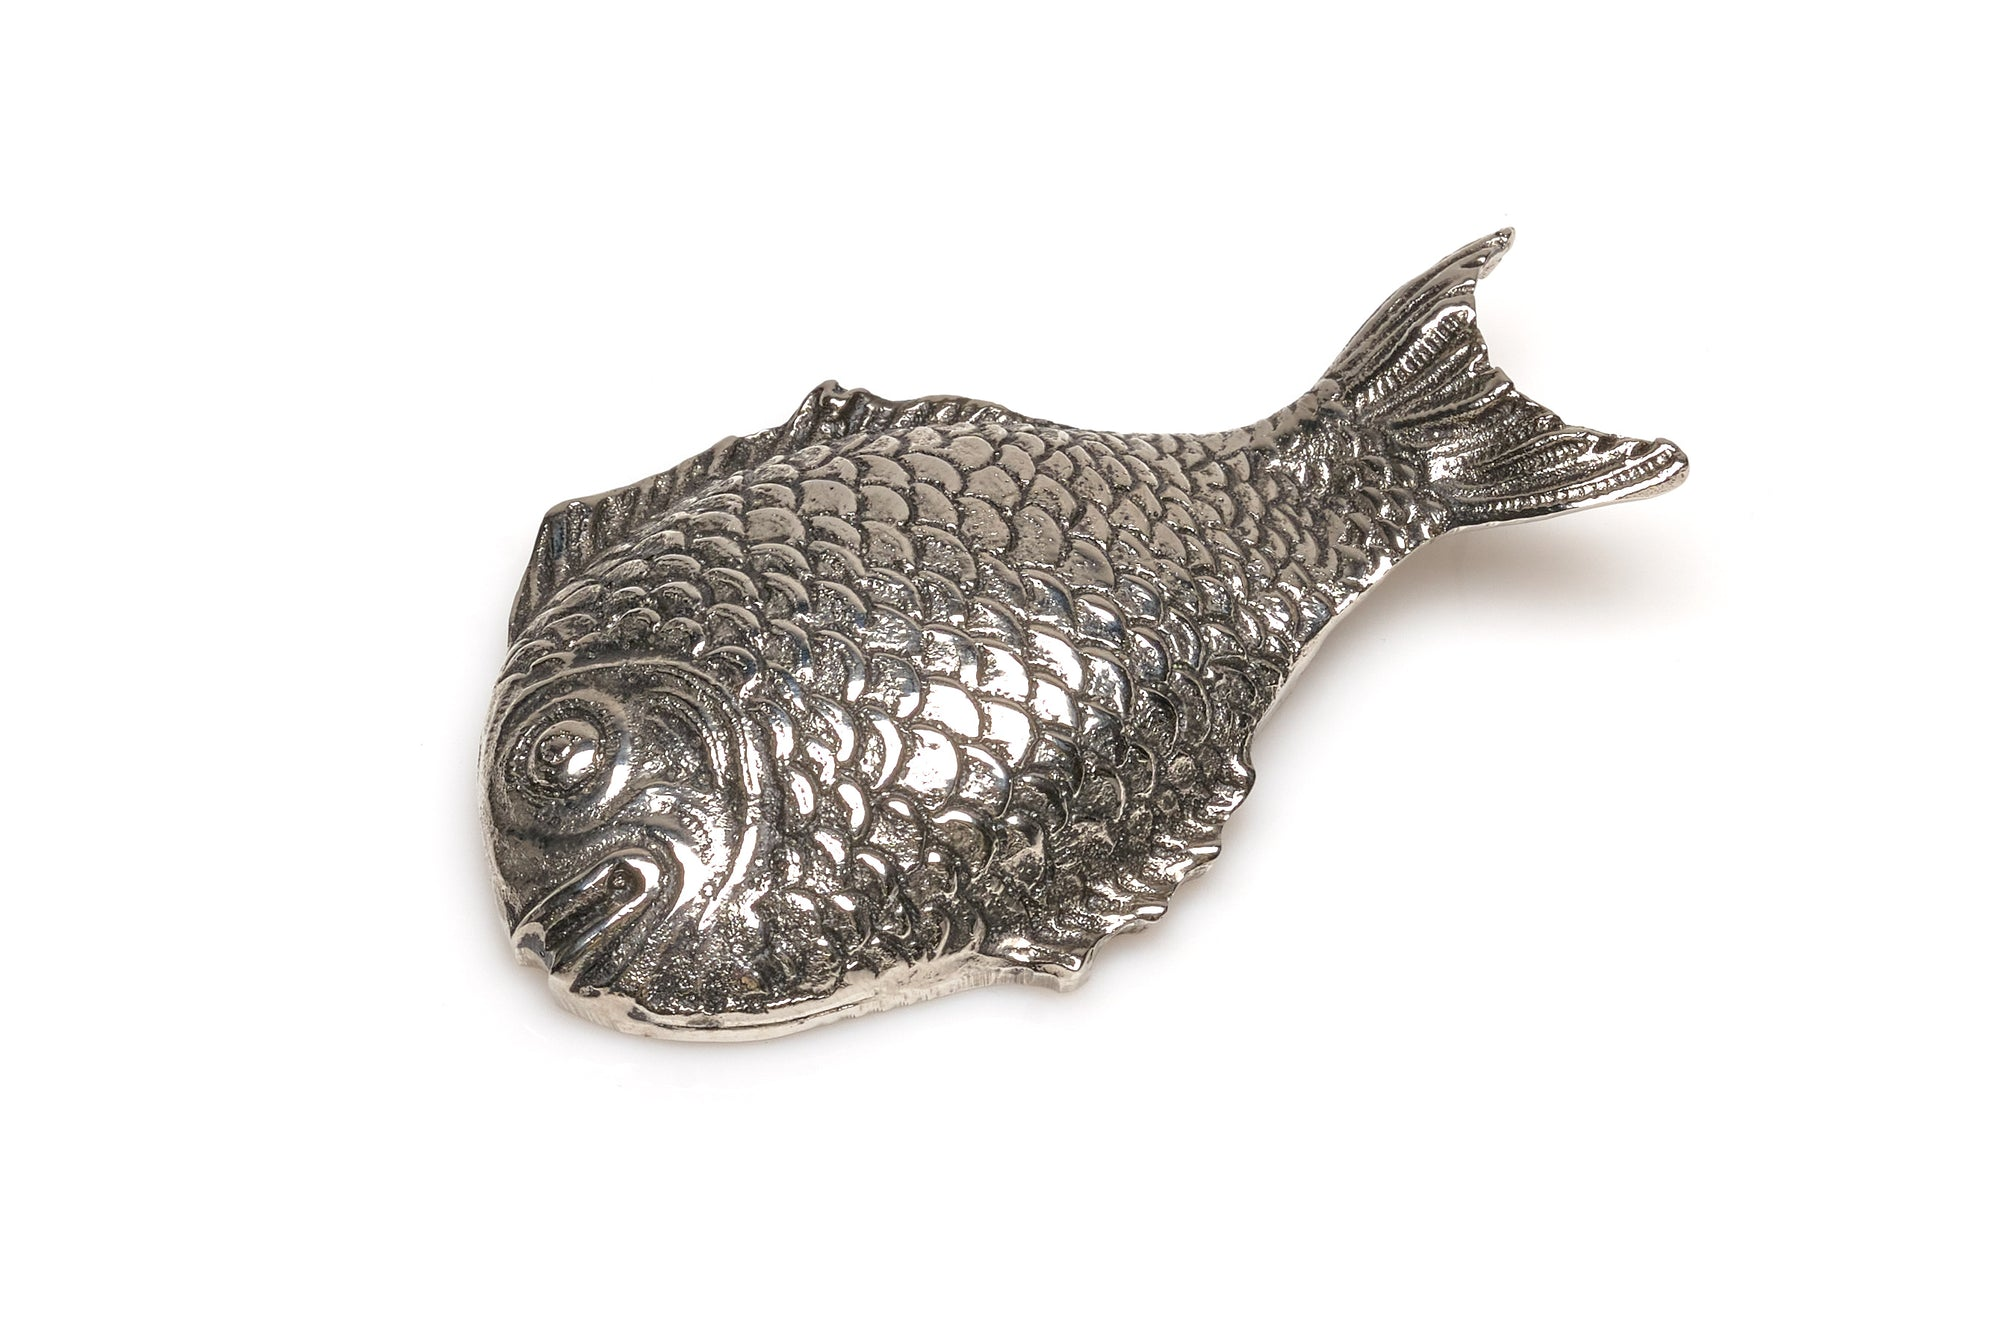 Gucci Fish Bottle Opener